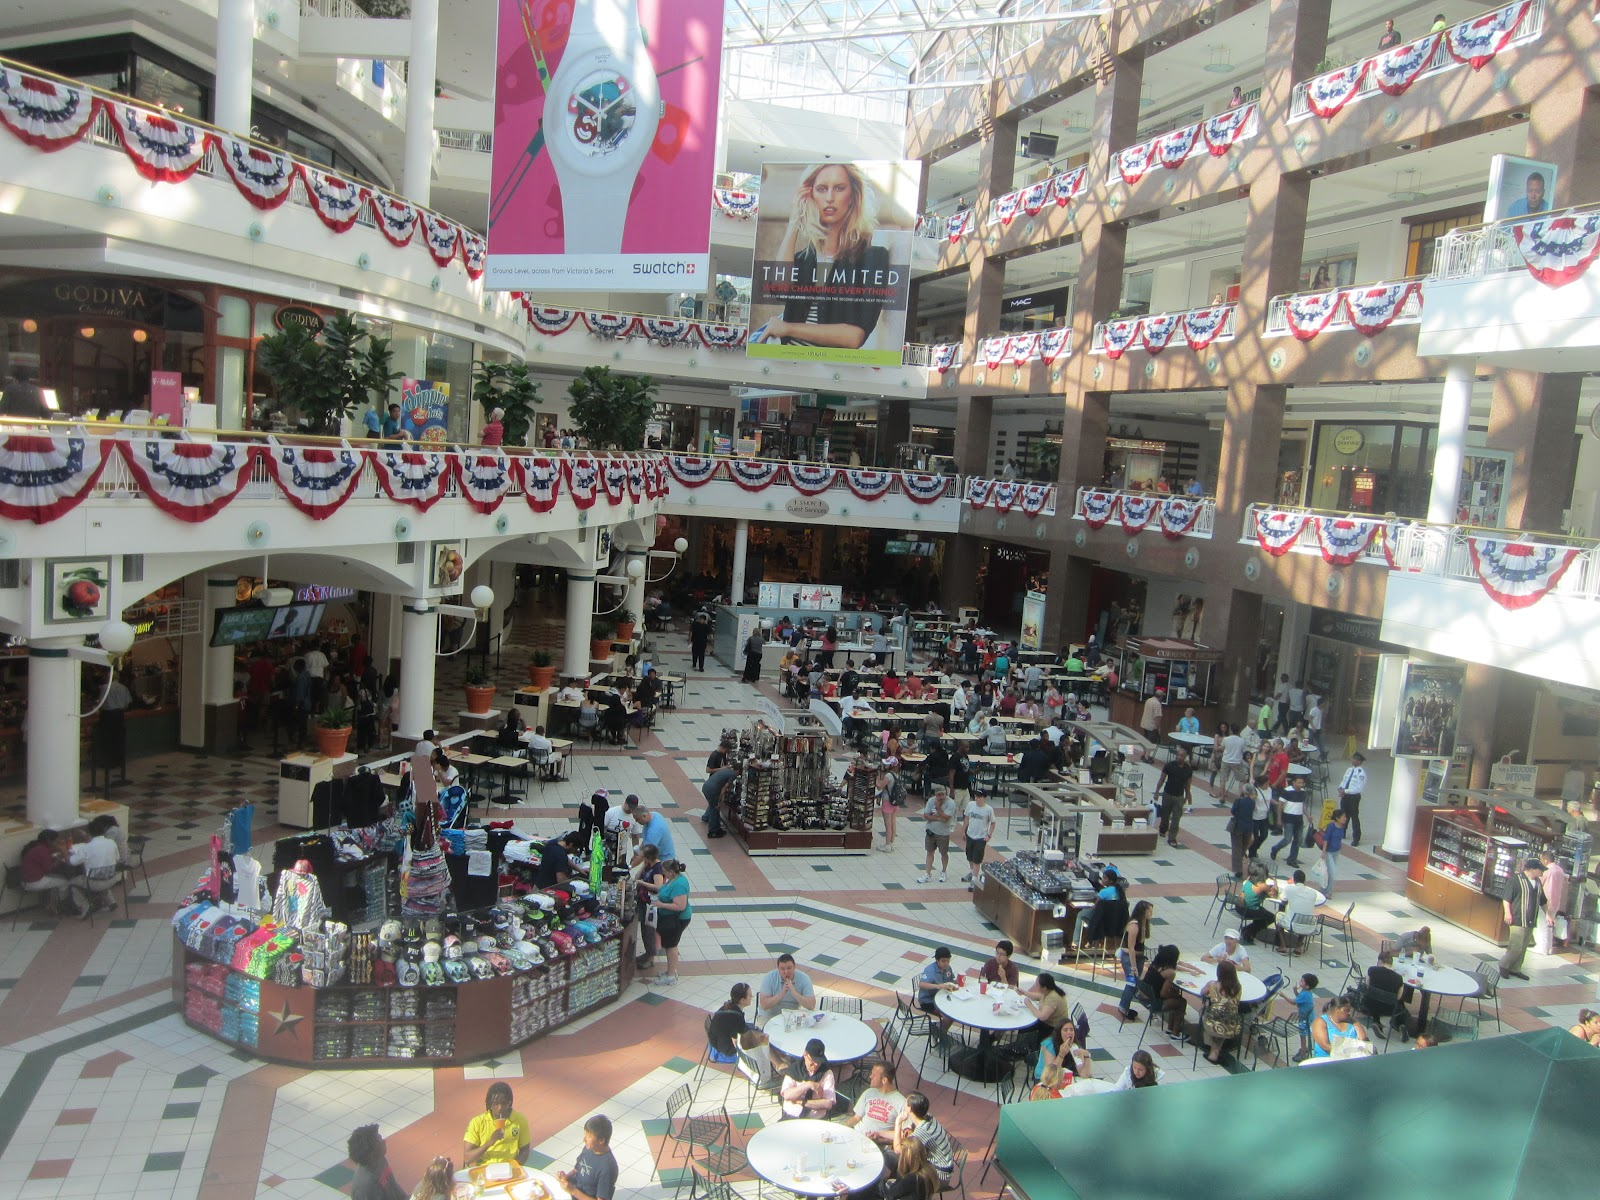 Pentagon City Mall is Associated With and Known as: The Pentagon City Mall is the shopping mall situated in Arlington, Virginia, USA. The Pentagon City Mall was opened on 5 October